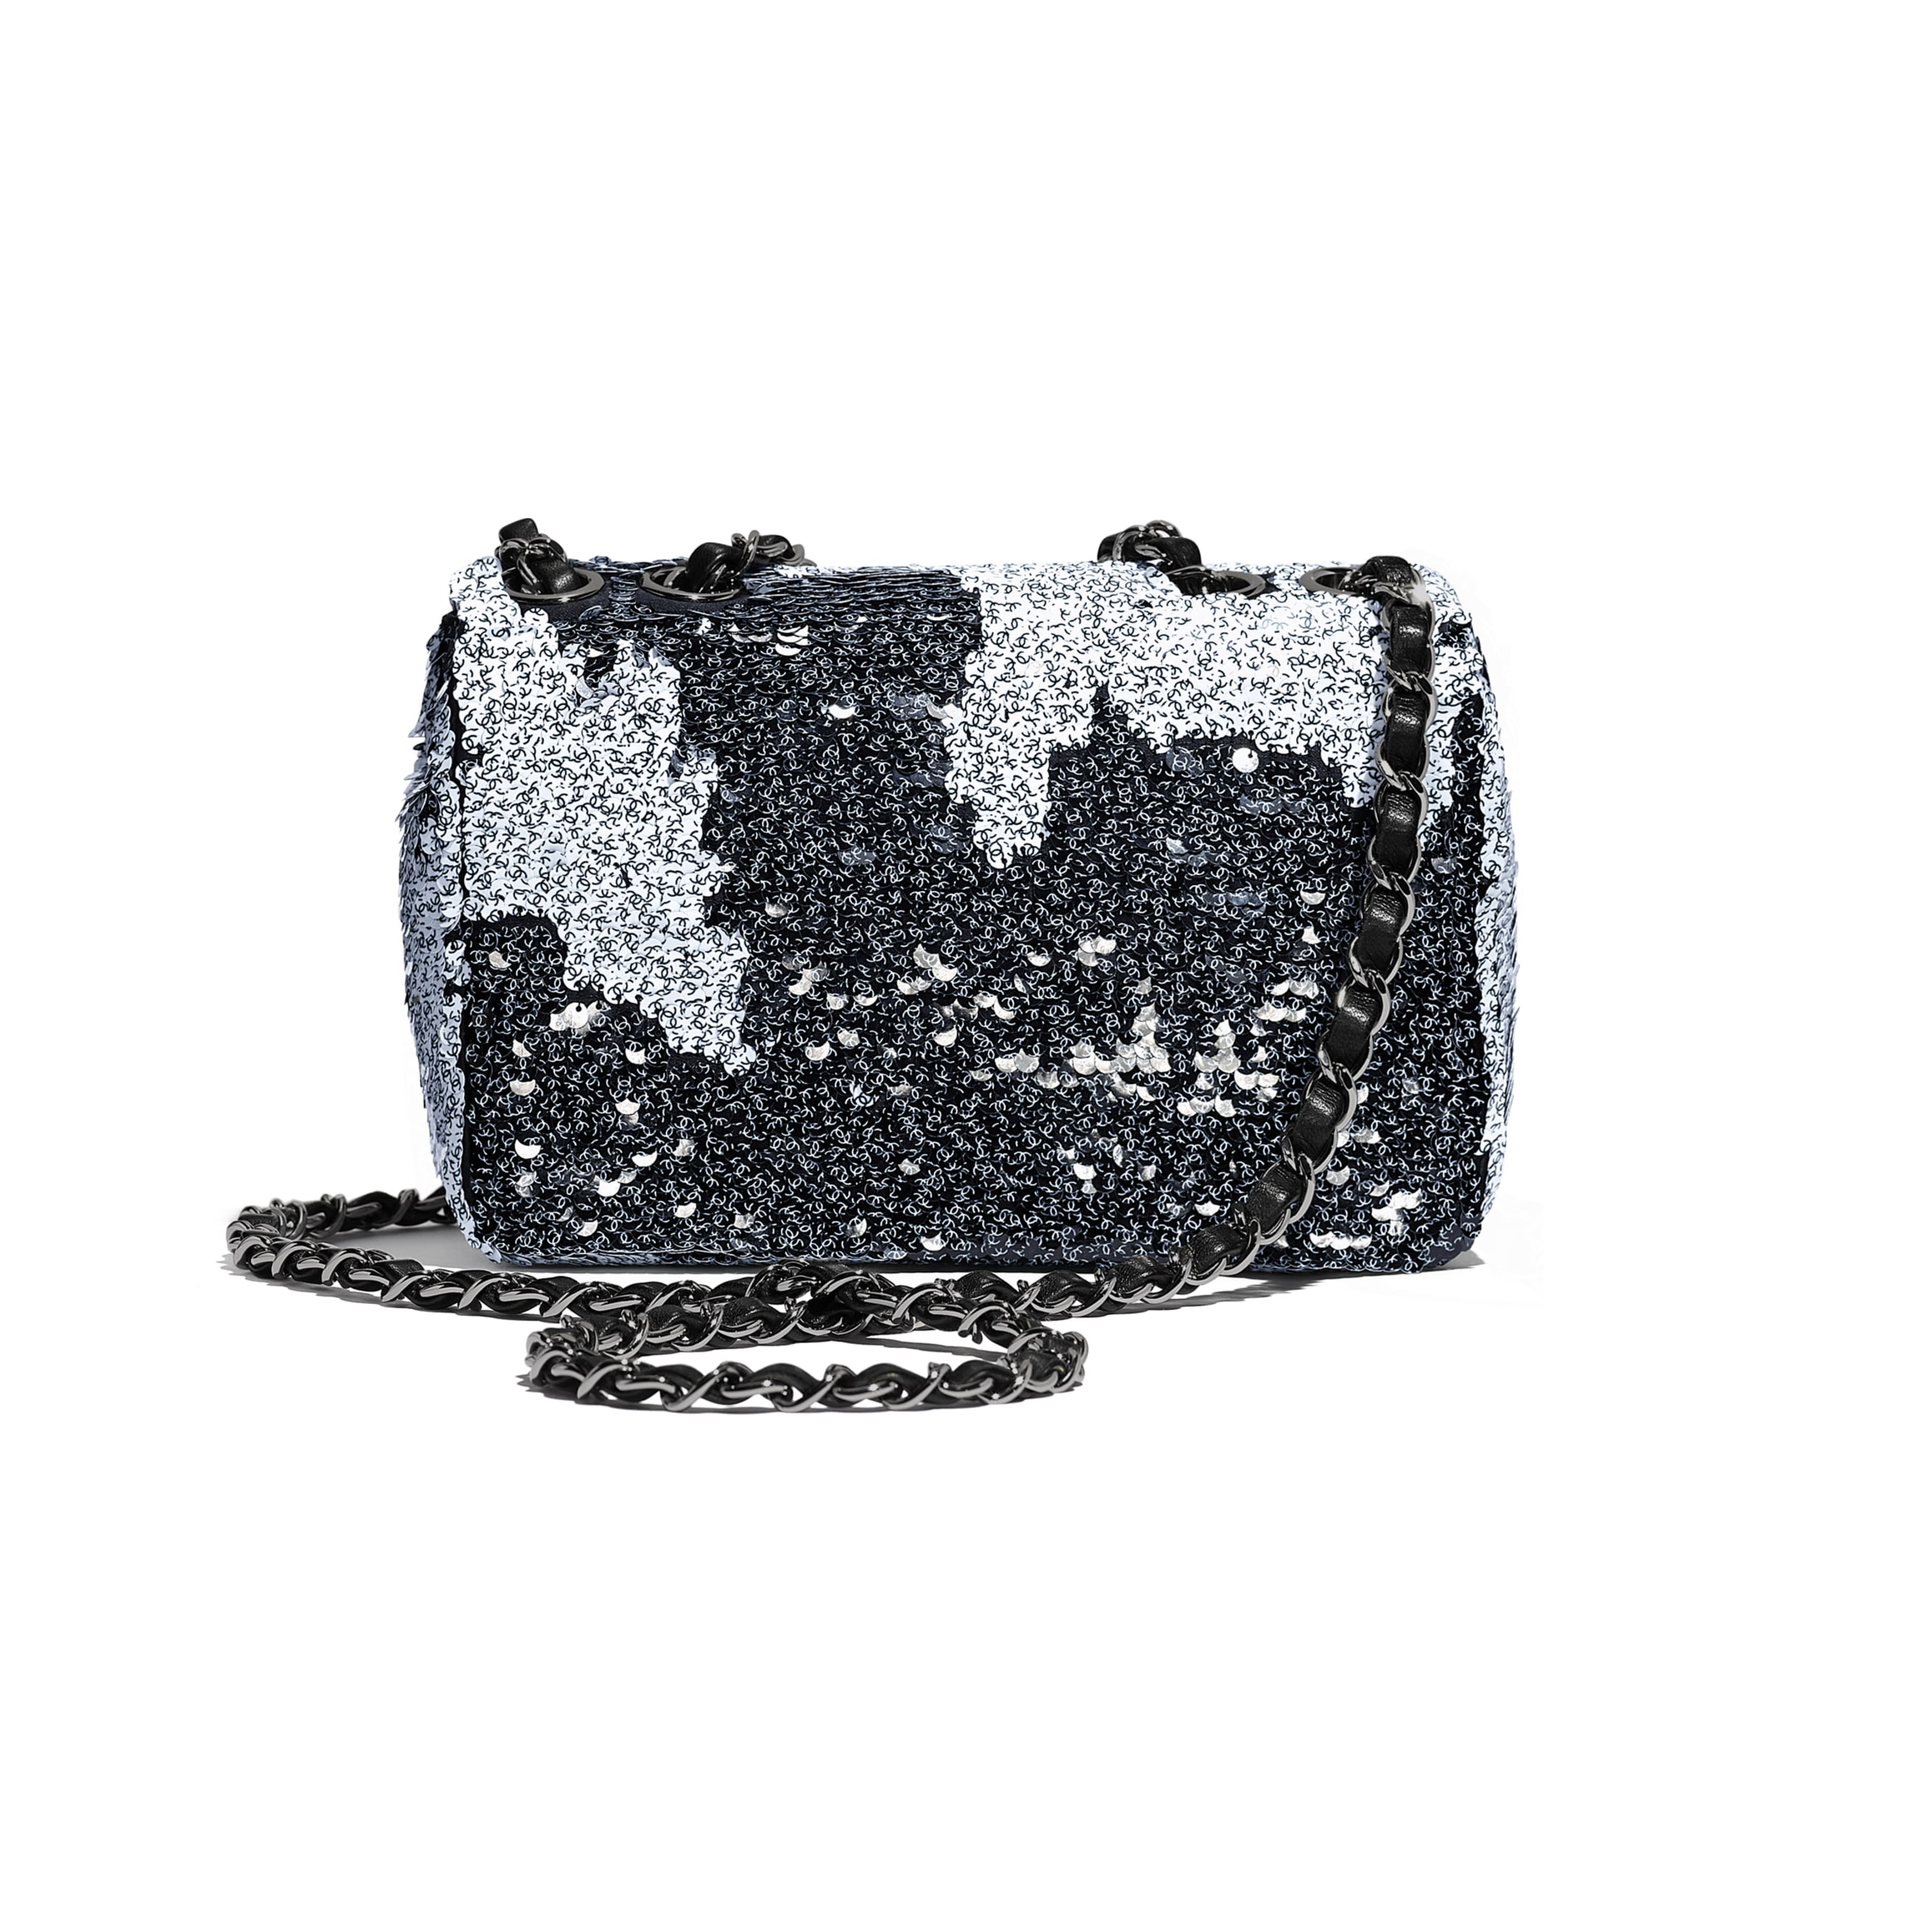 Flap Bag - White & Black - Sequins, Lambskin & Ruthenium-Finish Metal - Alternative view - see standard sized version